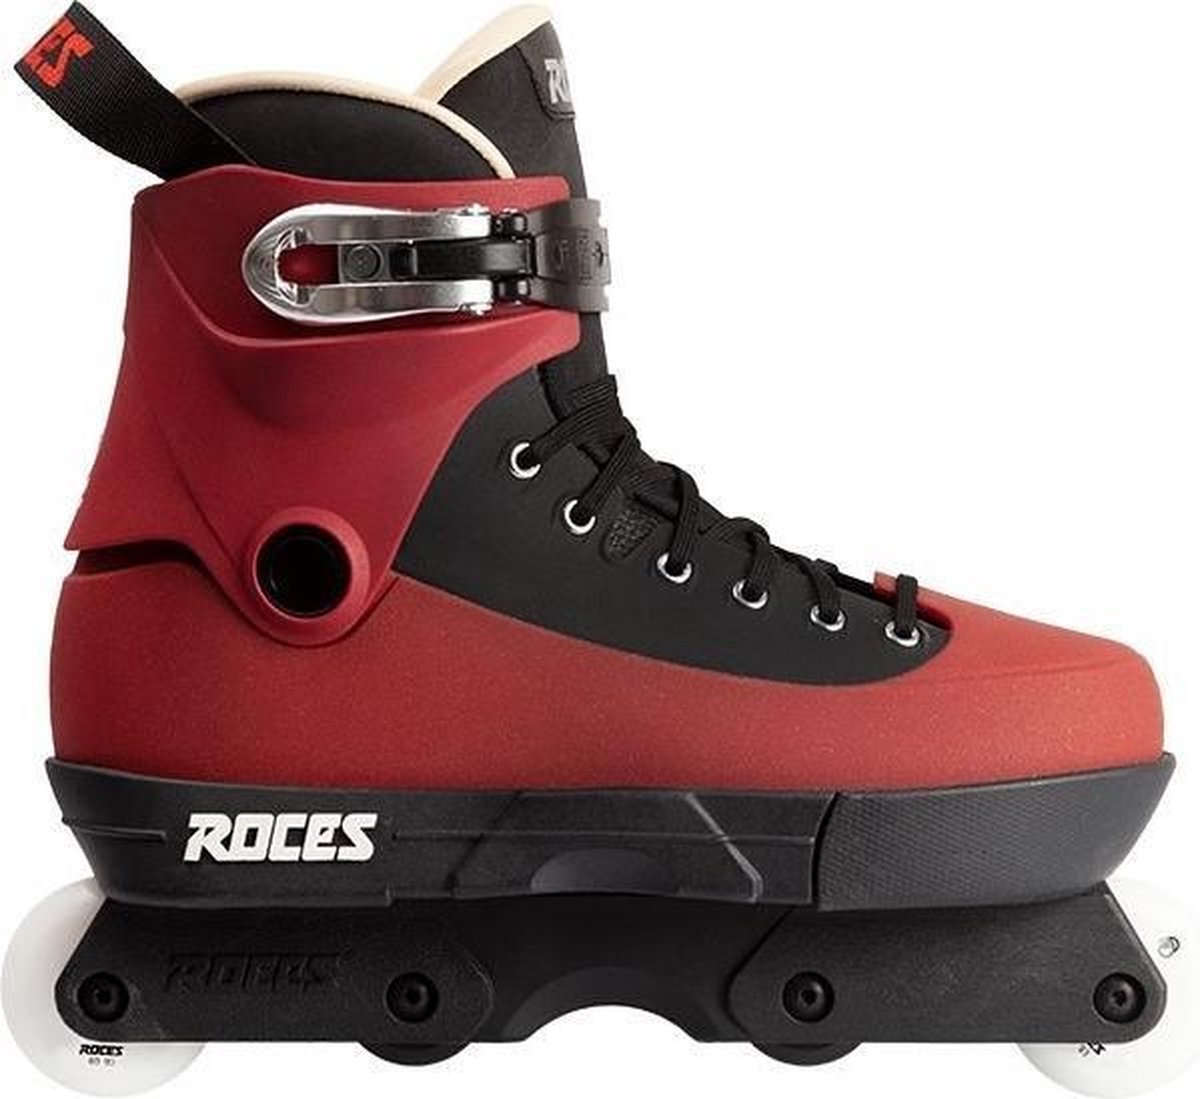 Roces Fifth Element inline skates maroon